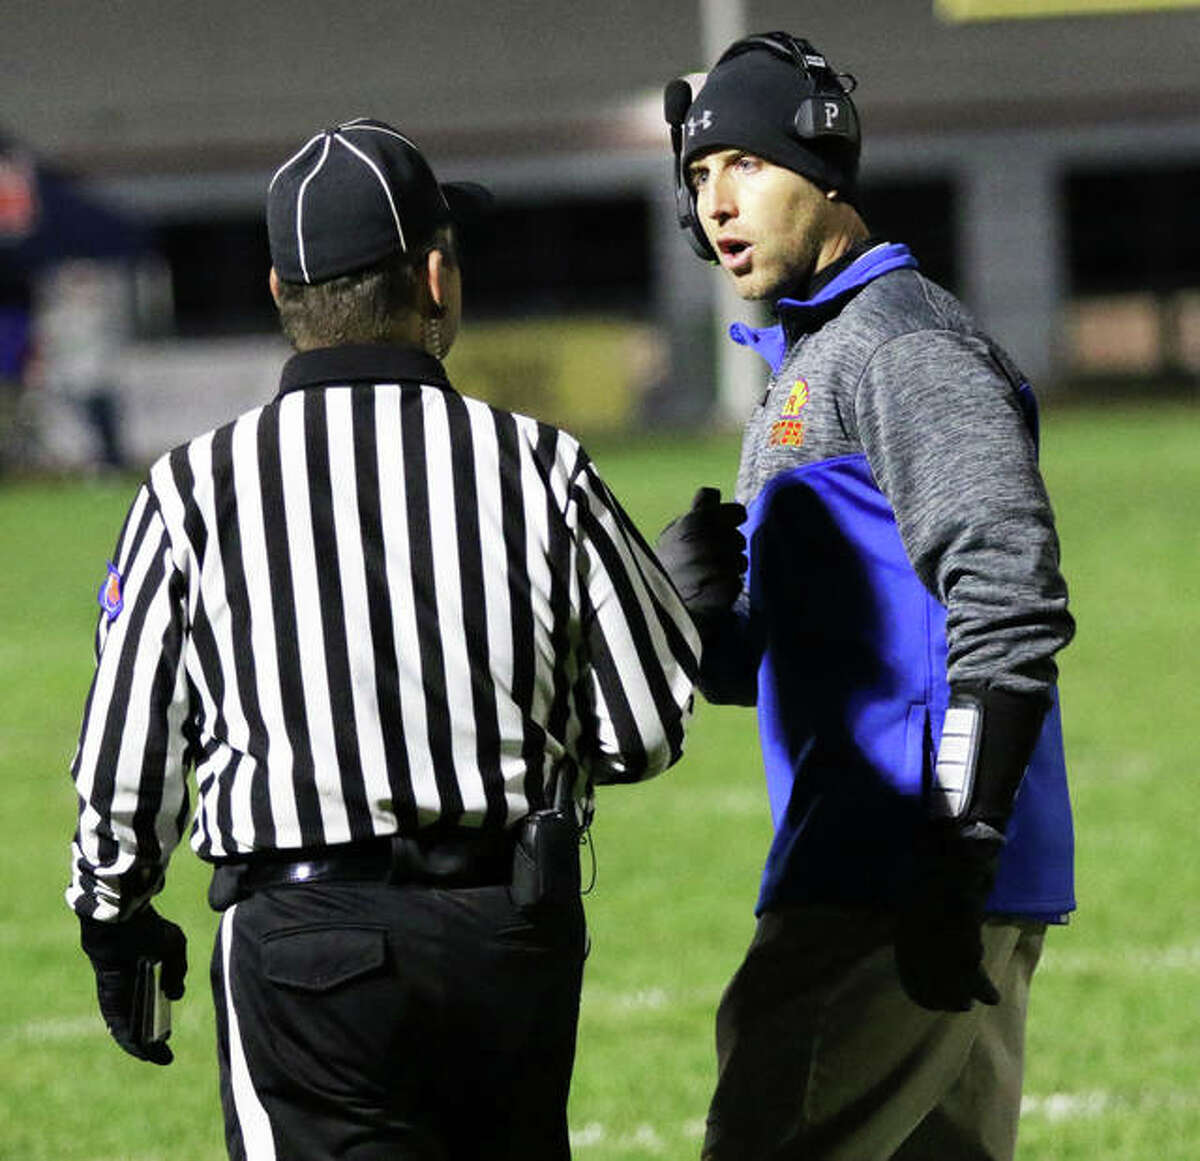 Roxana coach Wade DeVries (right) discusses a call with an official during a 2019 Shells' game against Gillespie at Charles Raich Field in Roxana.